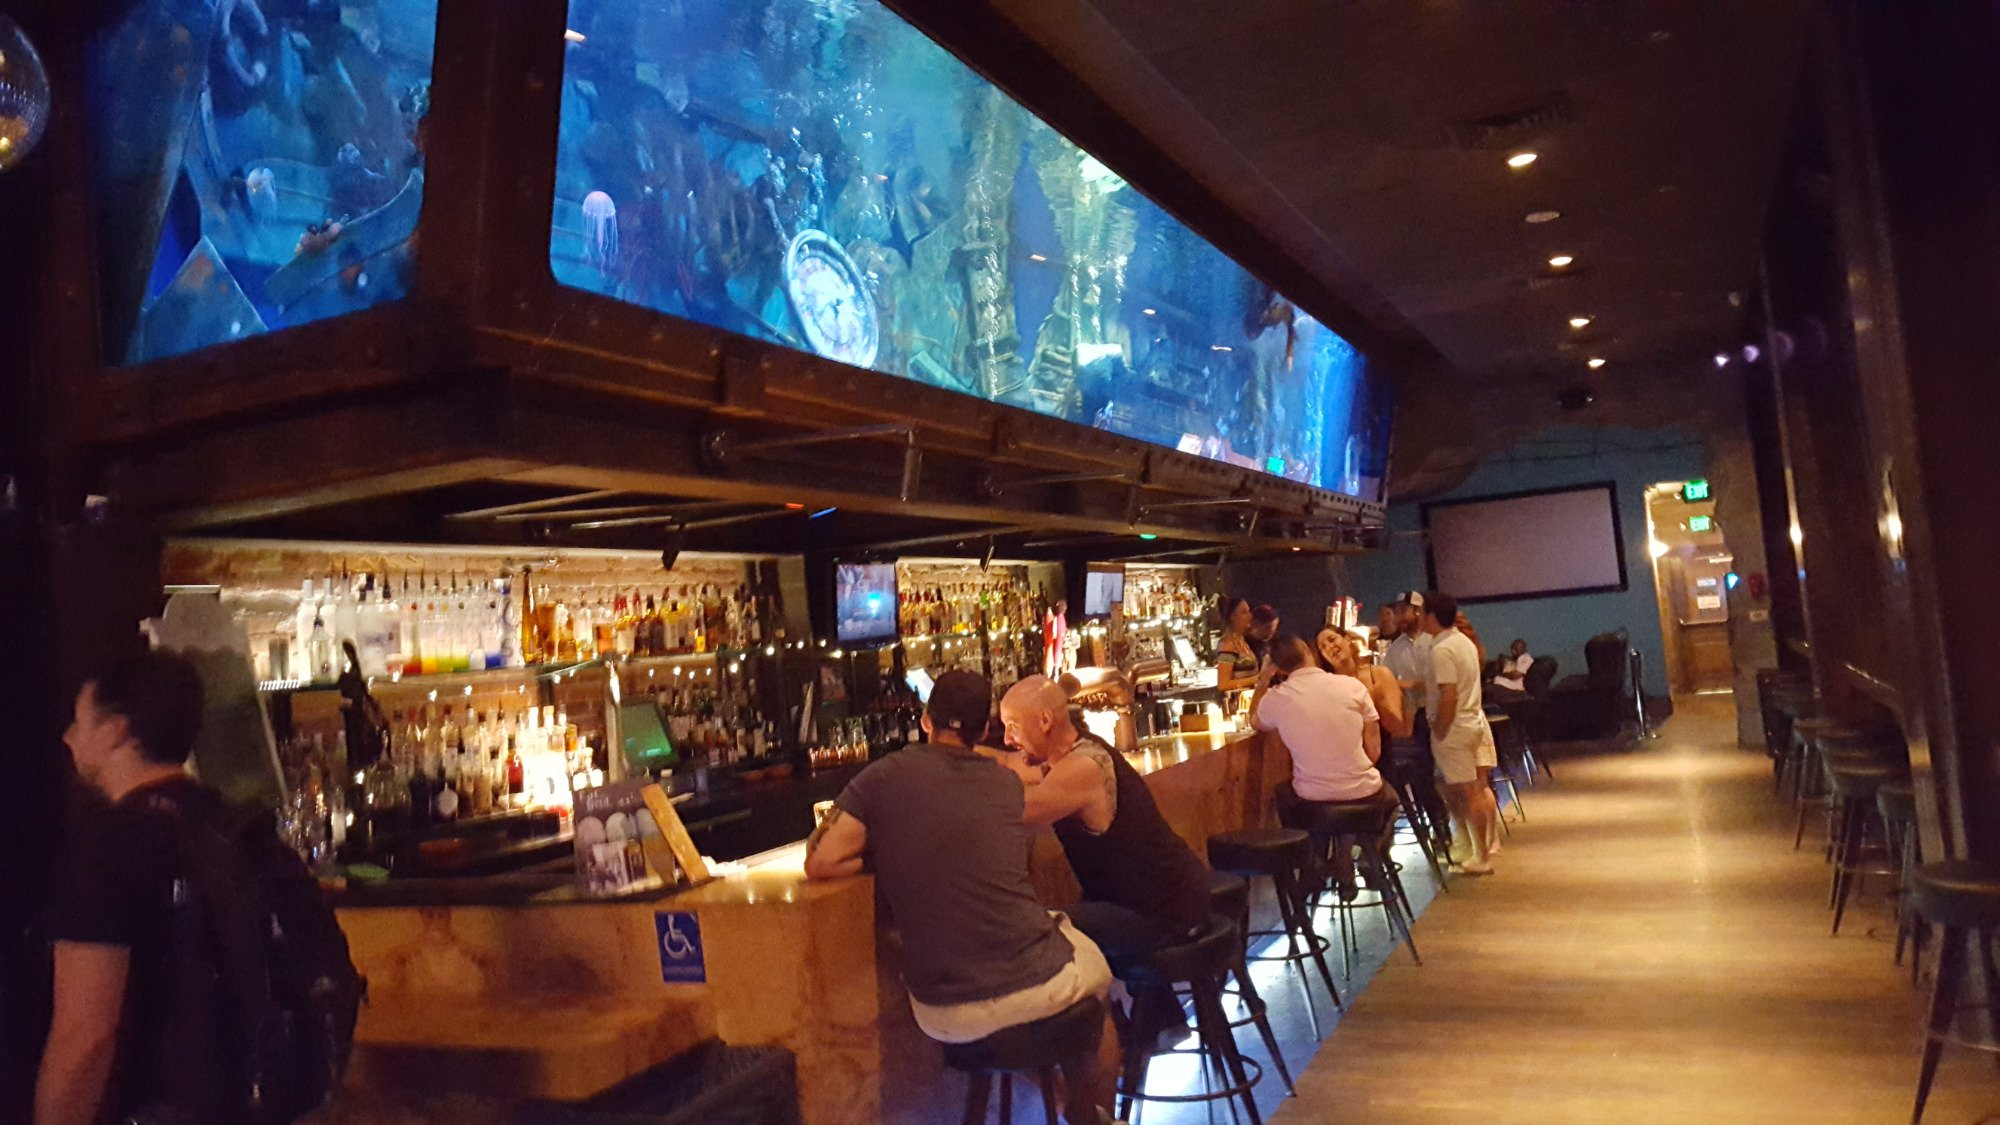 You Can Watch Mermaids At Dive Bar In Northern California